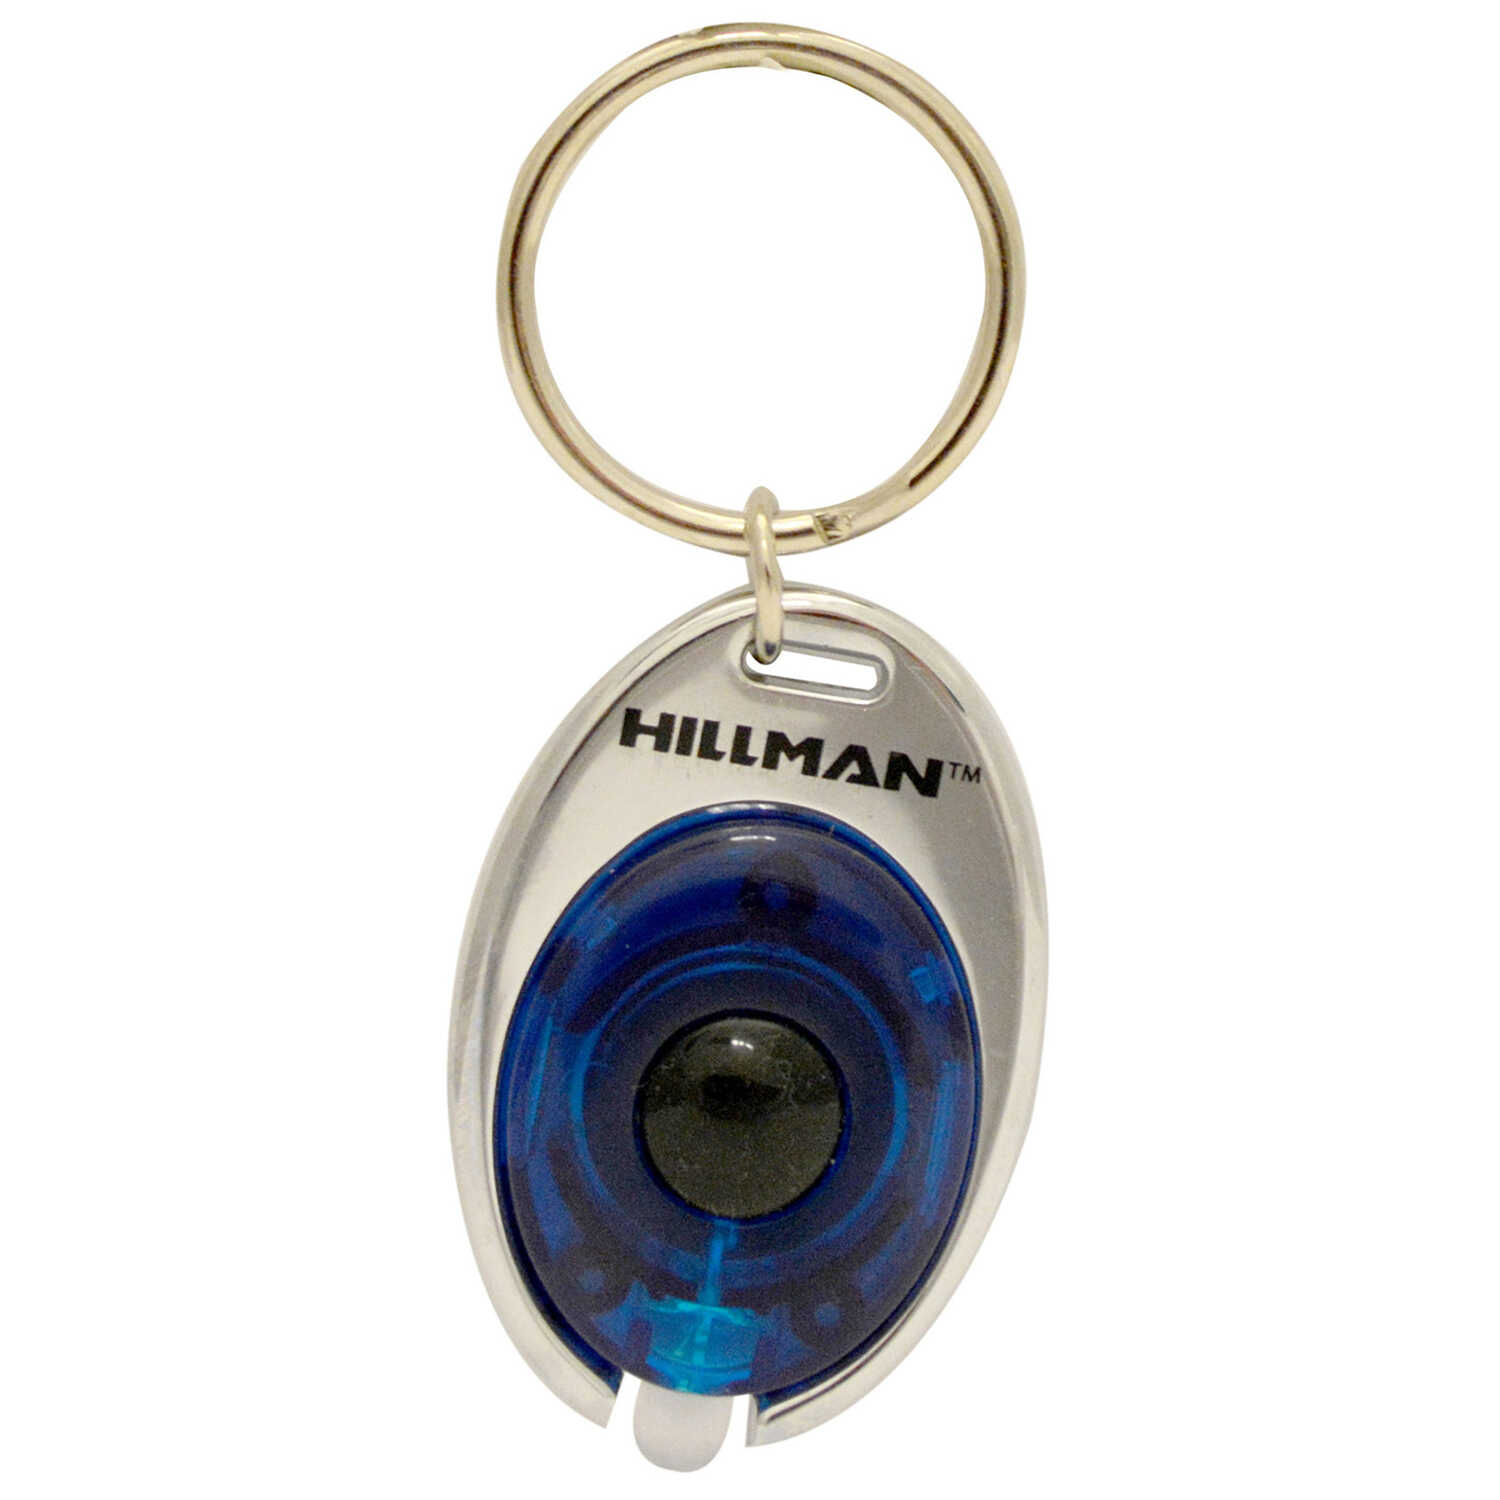 HILLMAN  Metal  Assorted  Decorative Key Ring  LED Light